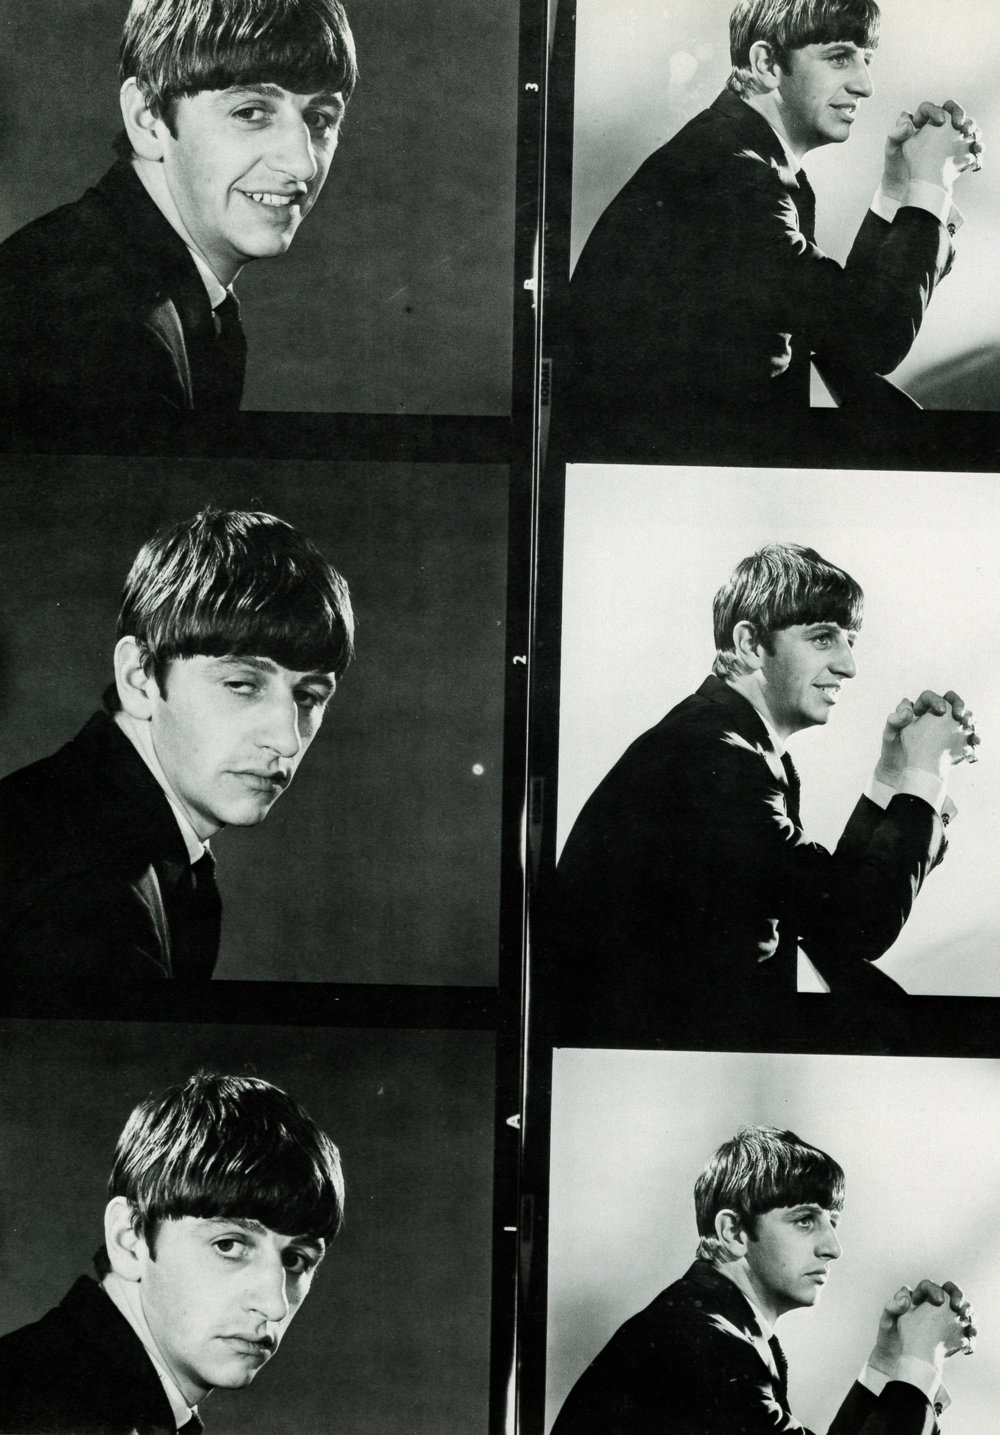 Ringo Starr 1963 - photos by Dezo Hoffman.